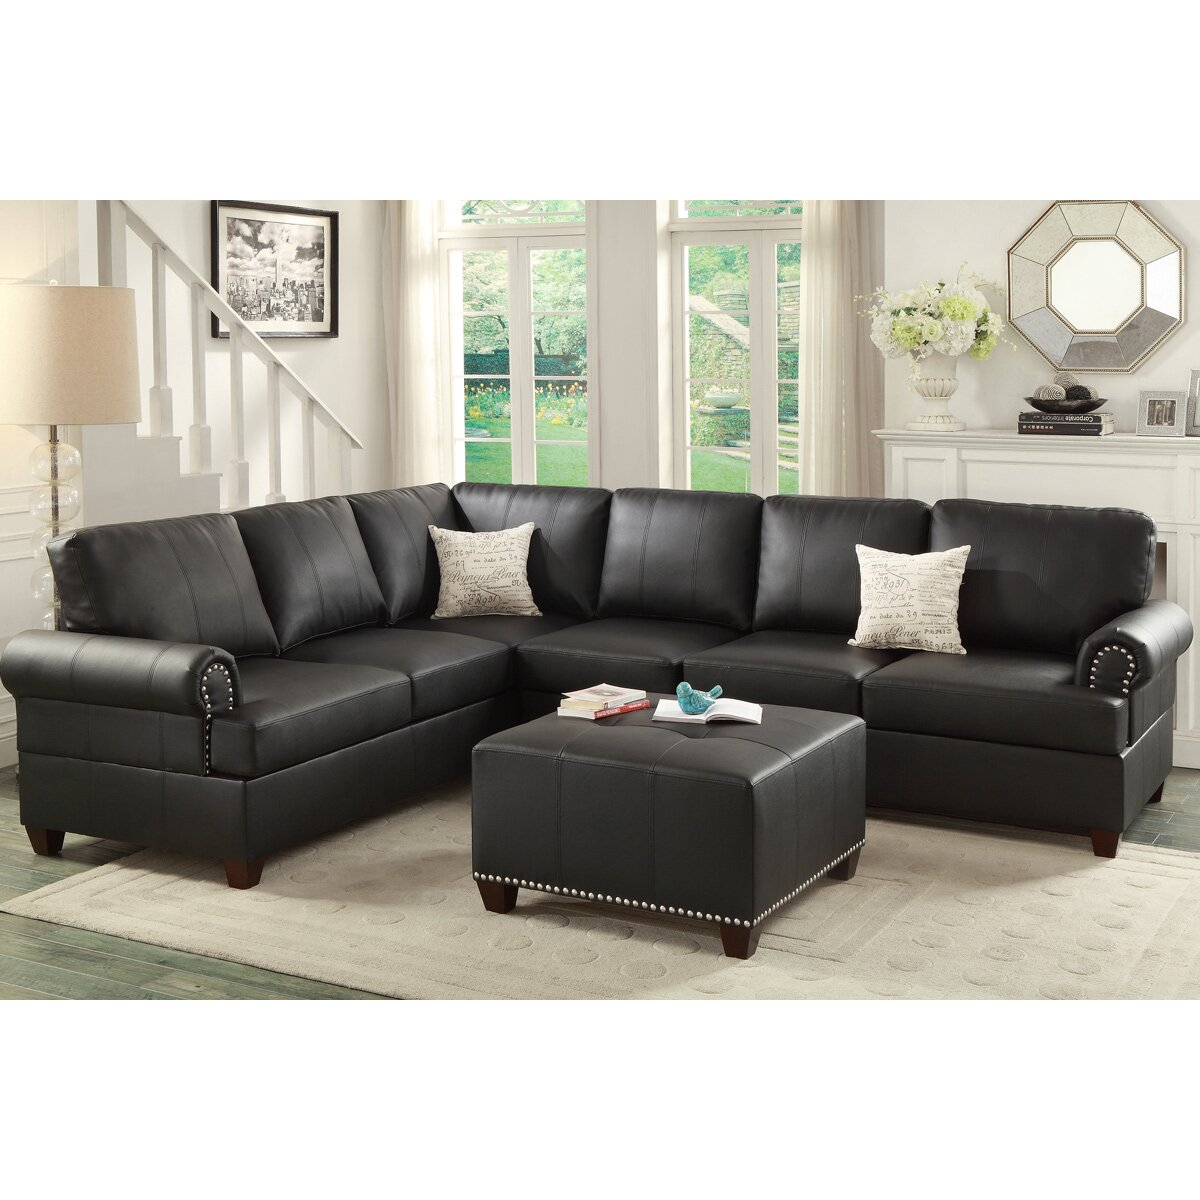 Poundex Sectional White Leather Sofa Chaise: Poundex Bobkona Cady Reversible Sectional & Reviews